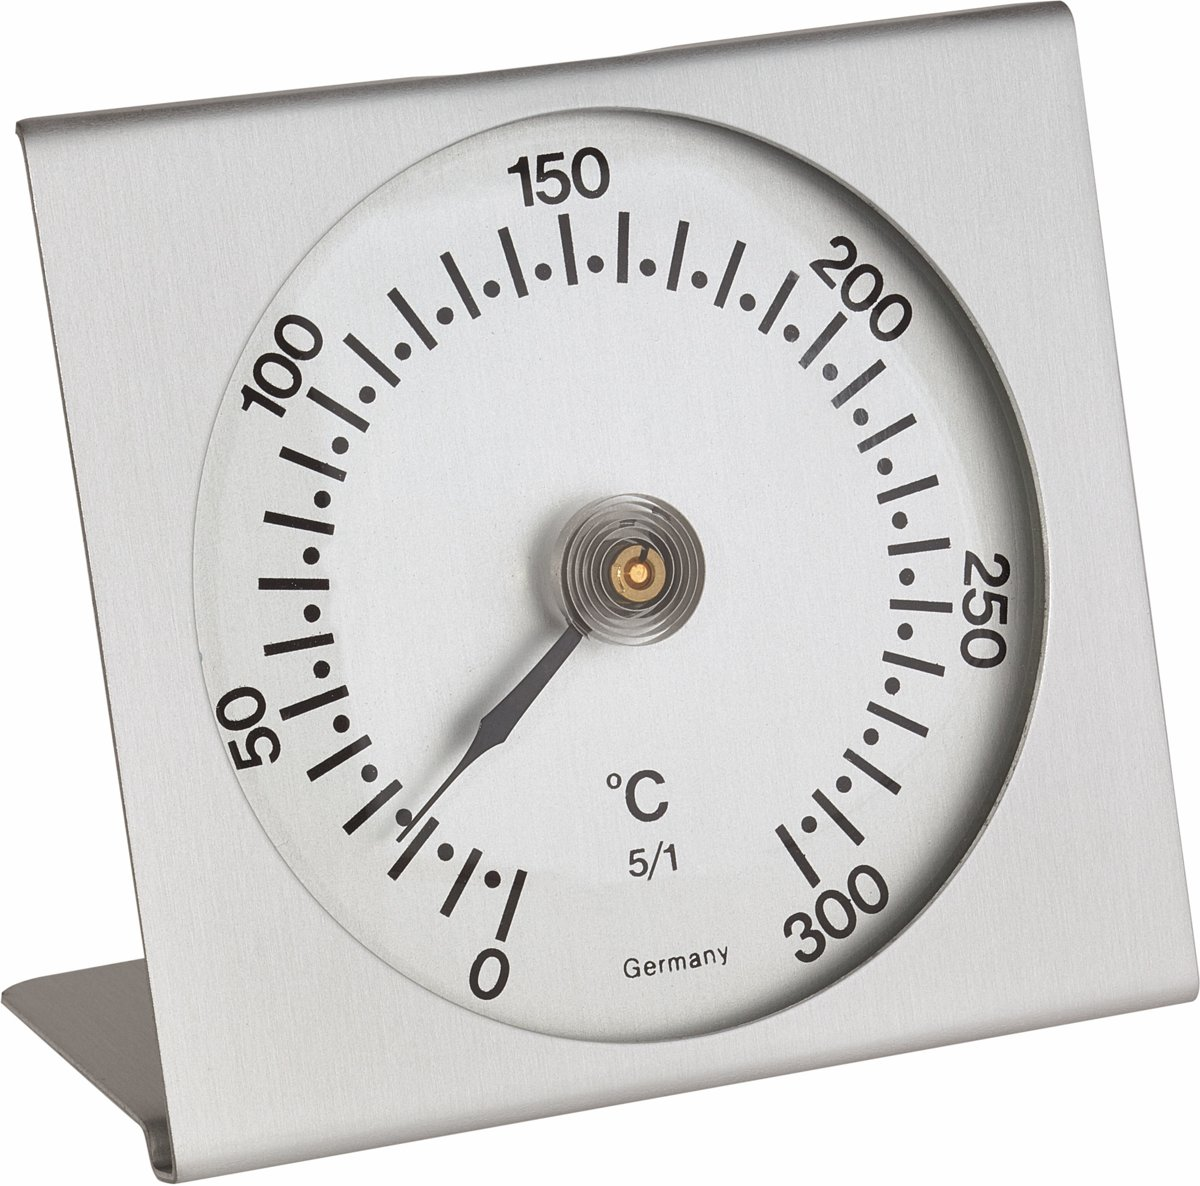 Oven-thermometer (0-300°C) kopen